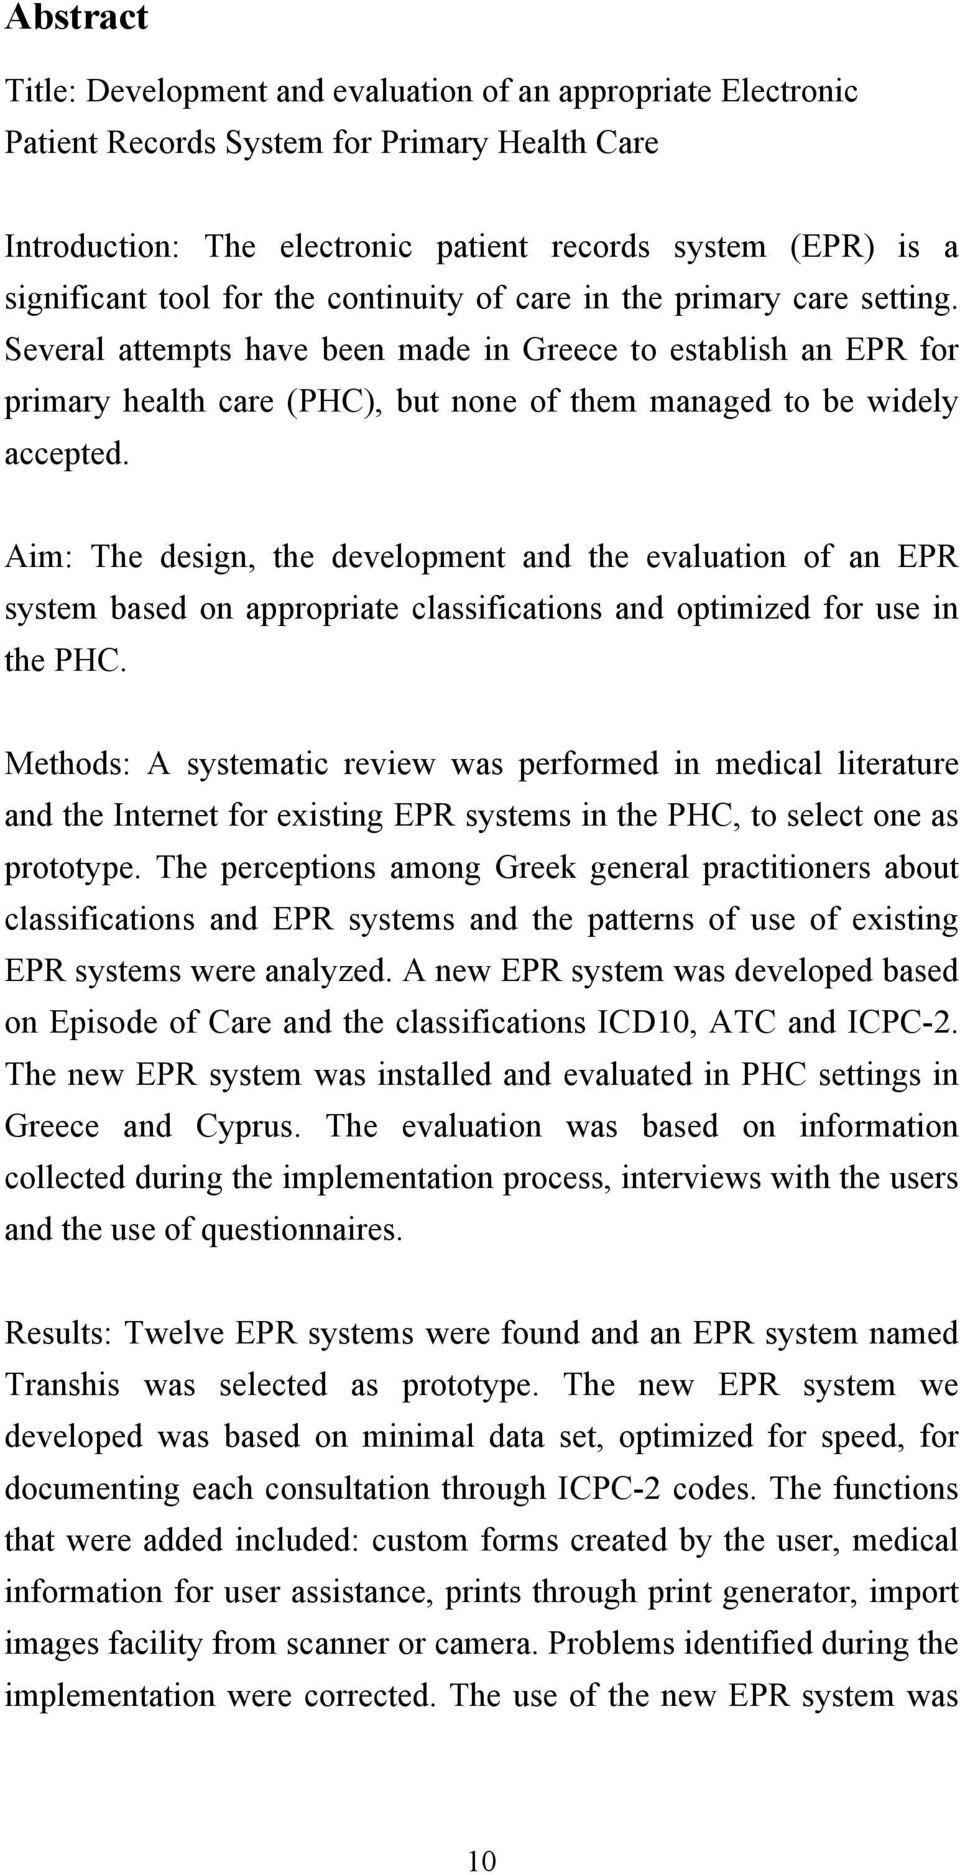 Aim: The design, the development and the evaluation of an EPR system based on appropriate classifications and optimized for use in the PHC.